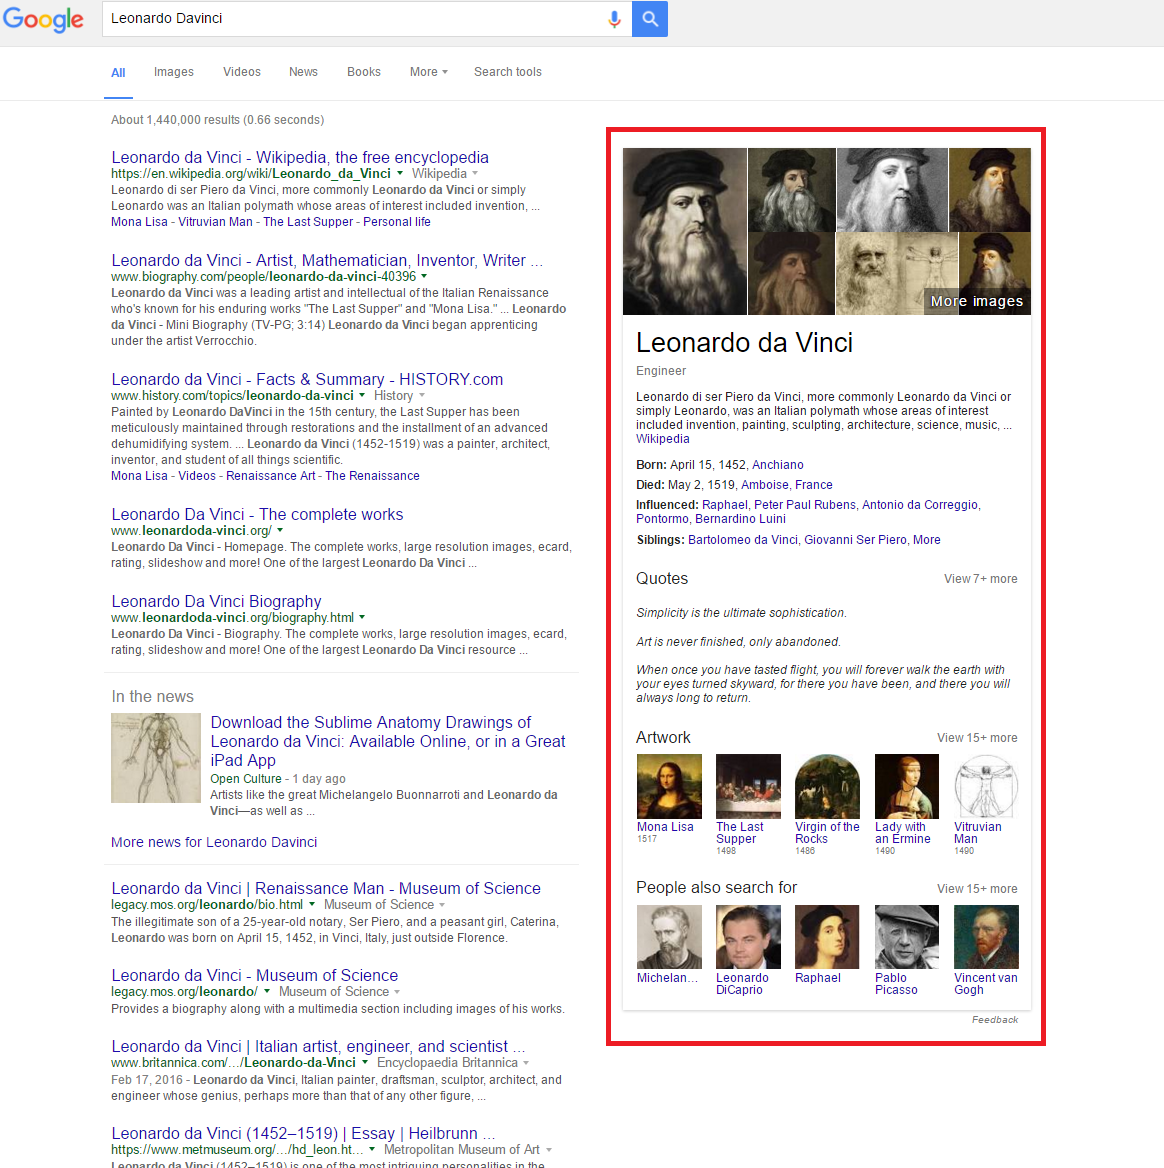 Google SERP with Knowledge Graphs